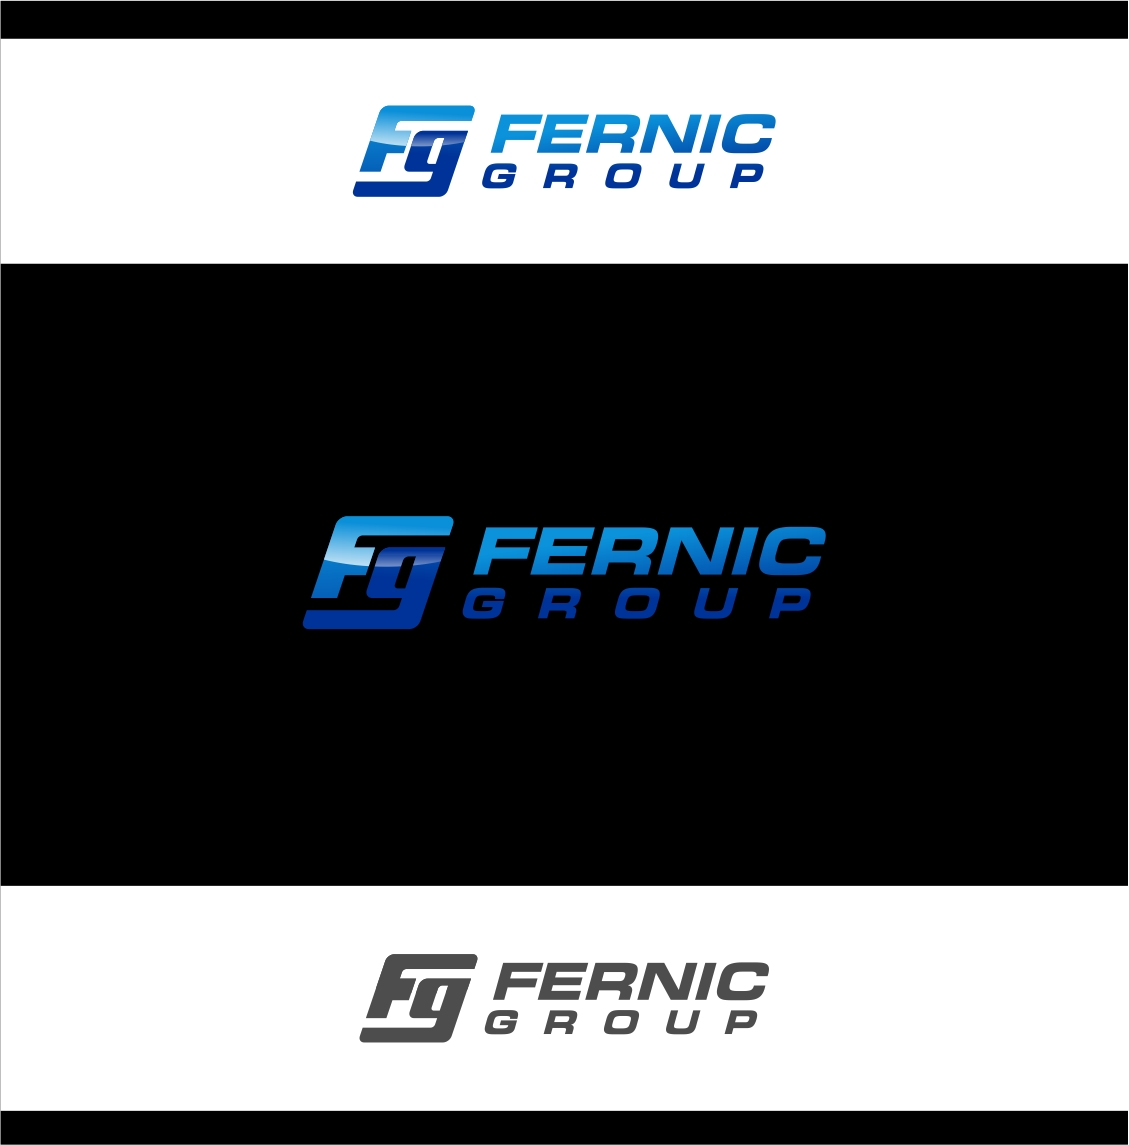 Logo Design by haidu - Entry No. 72 in the Logo Design Contest Artistic Logo Design for Fernic Goup.